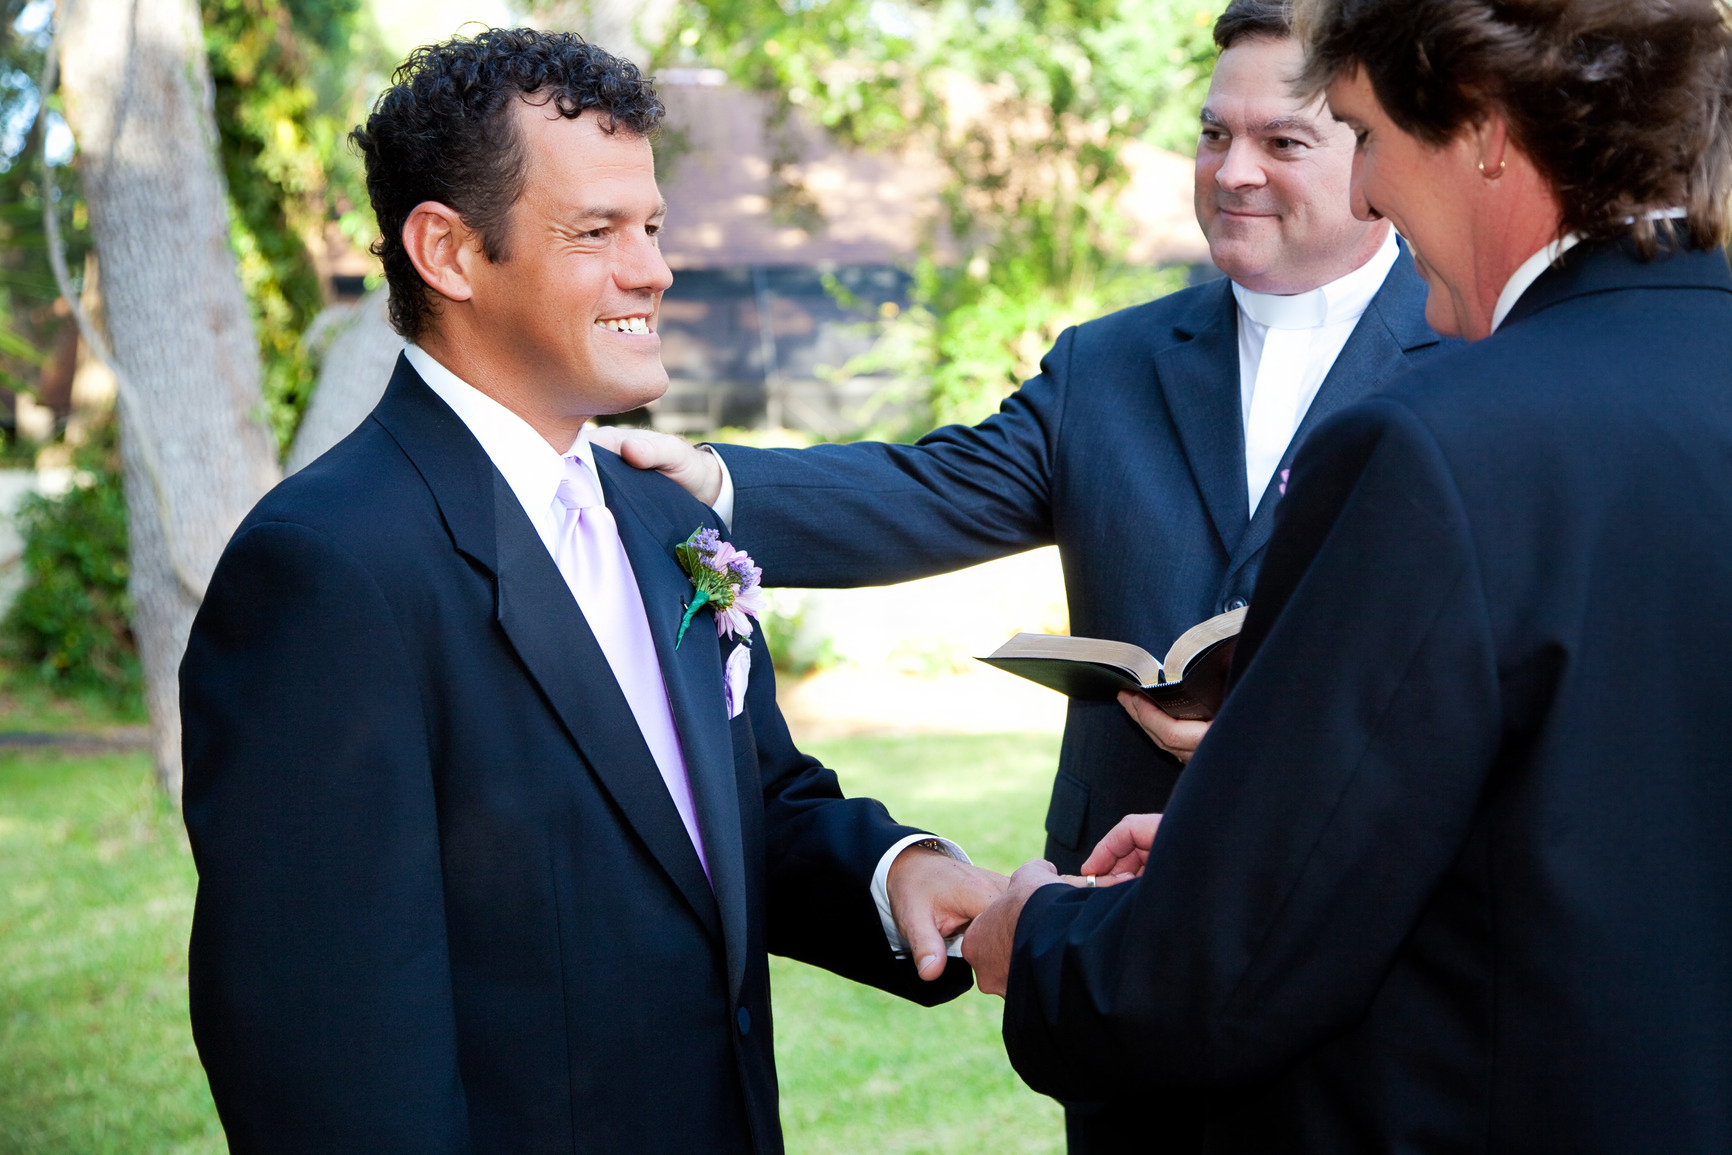 Heartland-Weddings-gay-marriage-with-this-ring-m.jpg